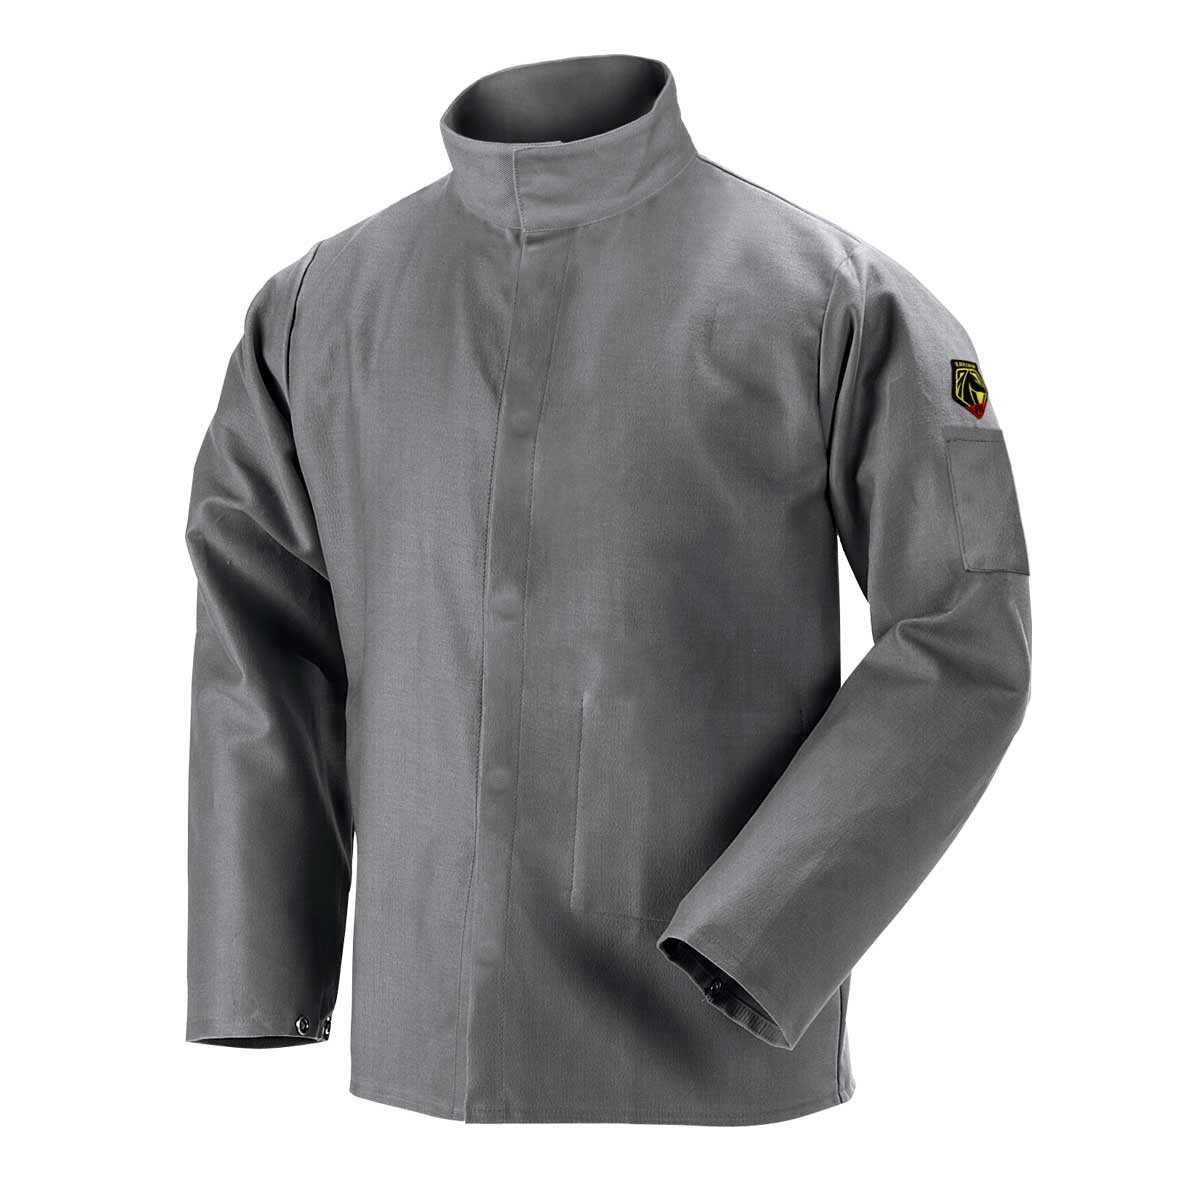 9 OZ DELUXE FLAME RESISTANT COTTON WELDING JACKET - NFPA 2112, NFPA 70E. Pack 1. X Large. JF2220-GY-XLG